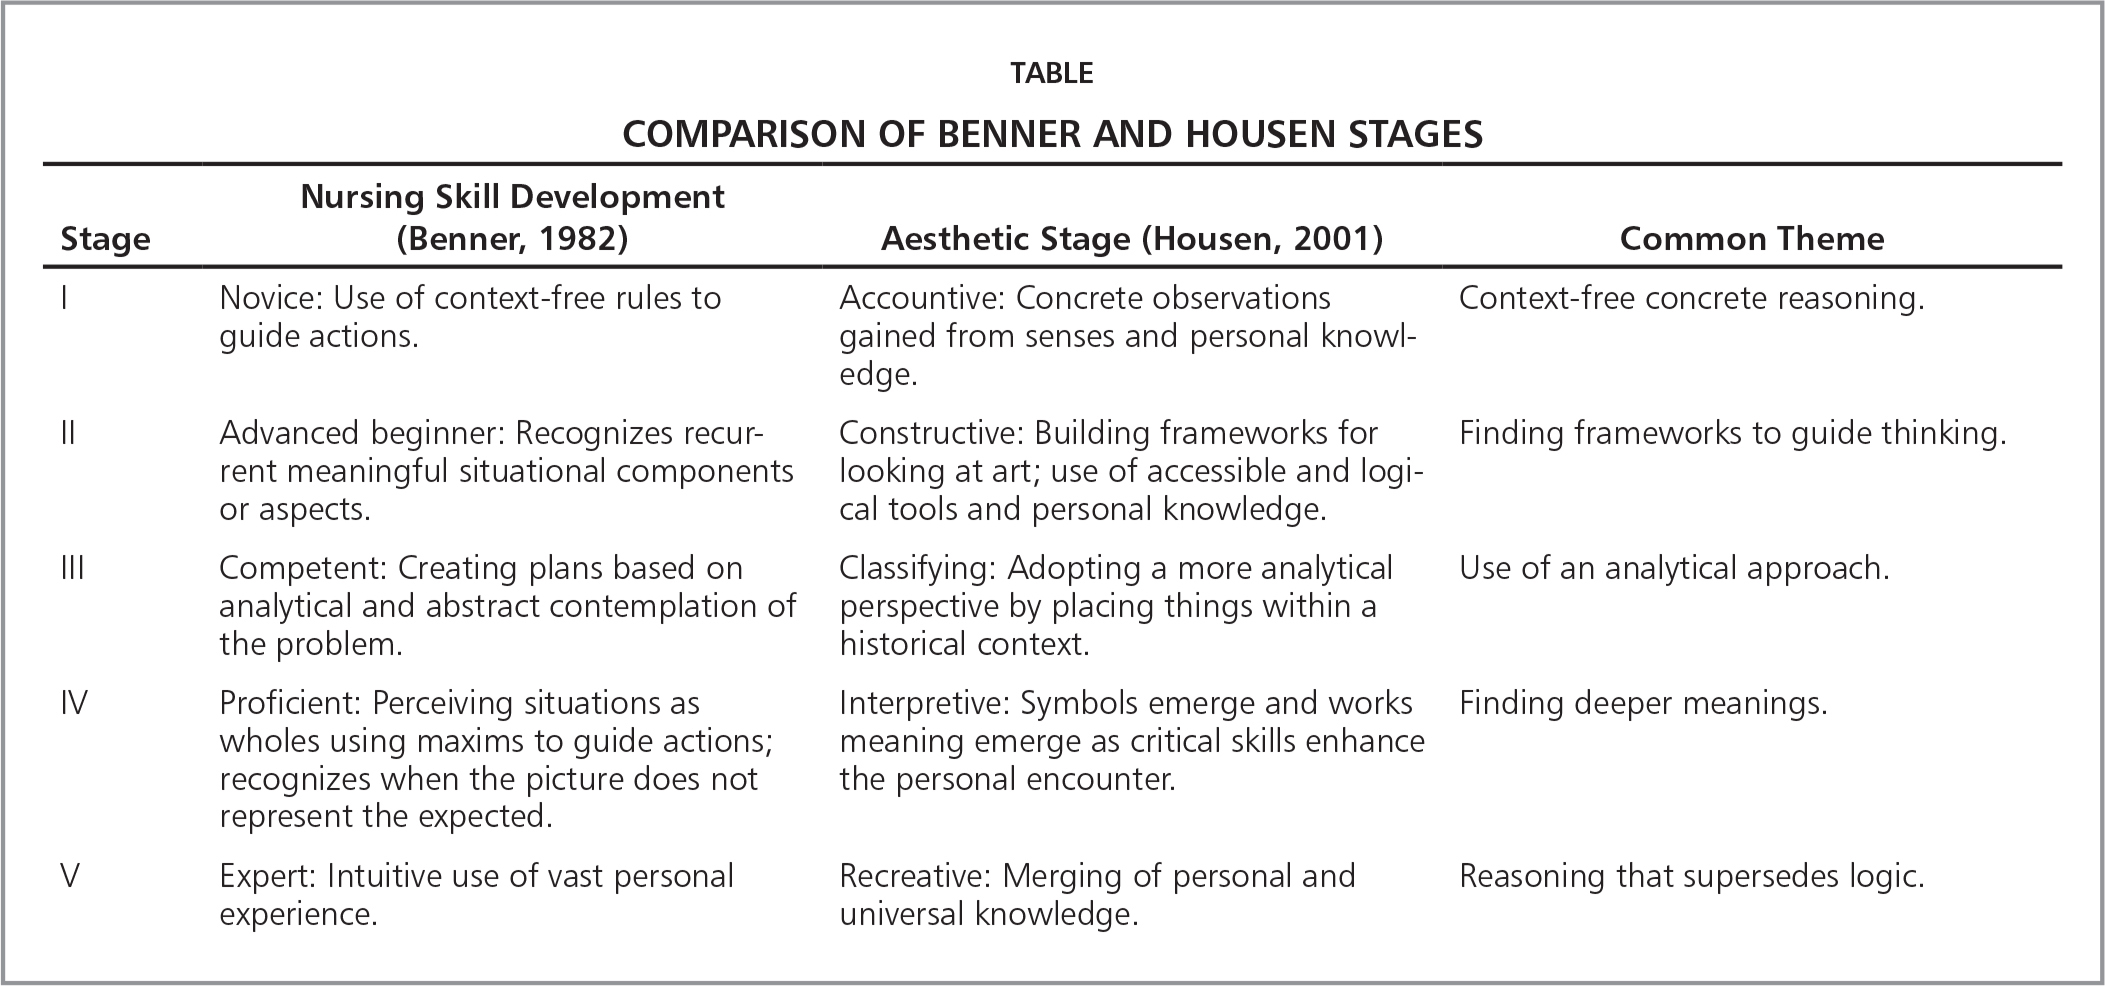 Doctorate of nursing practice students impressions of uses for comparison of benner and housen stages biocorpaavc